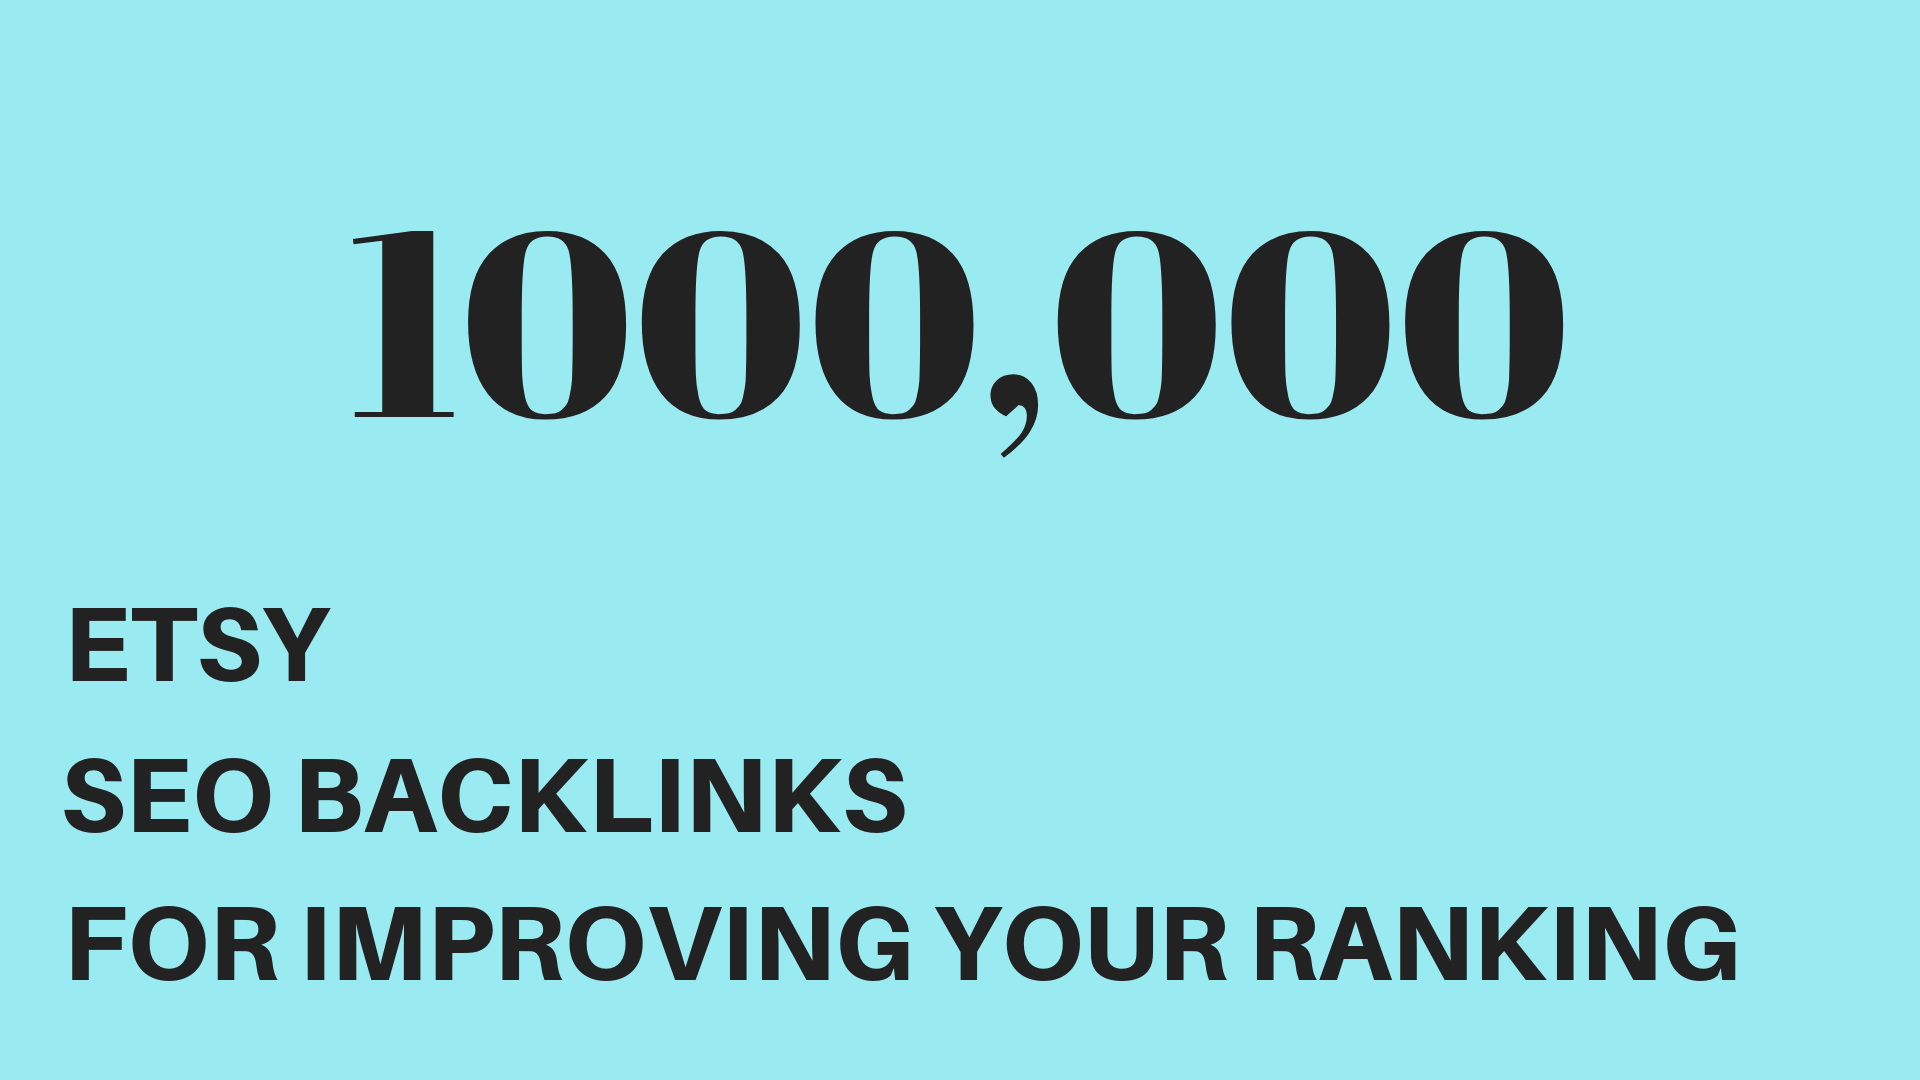 Make backlinks to promote your ebay store